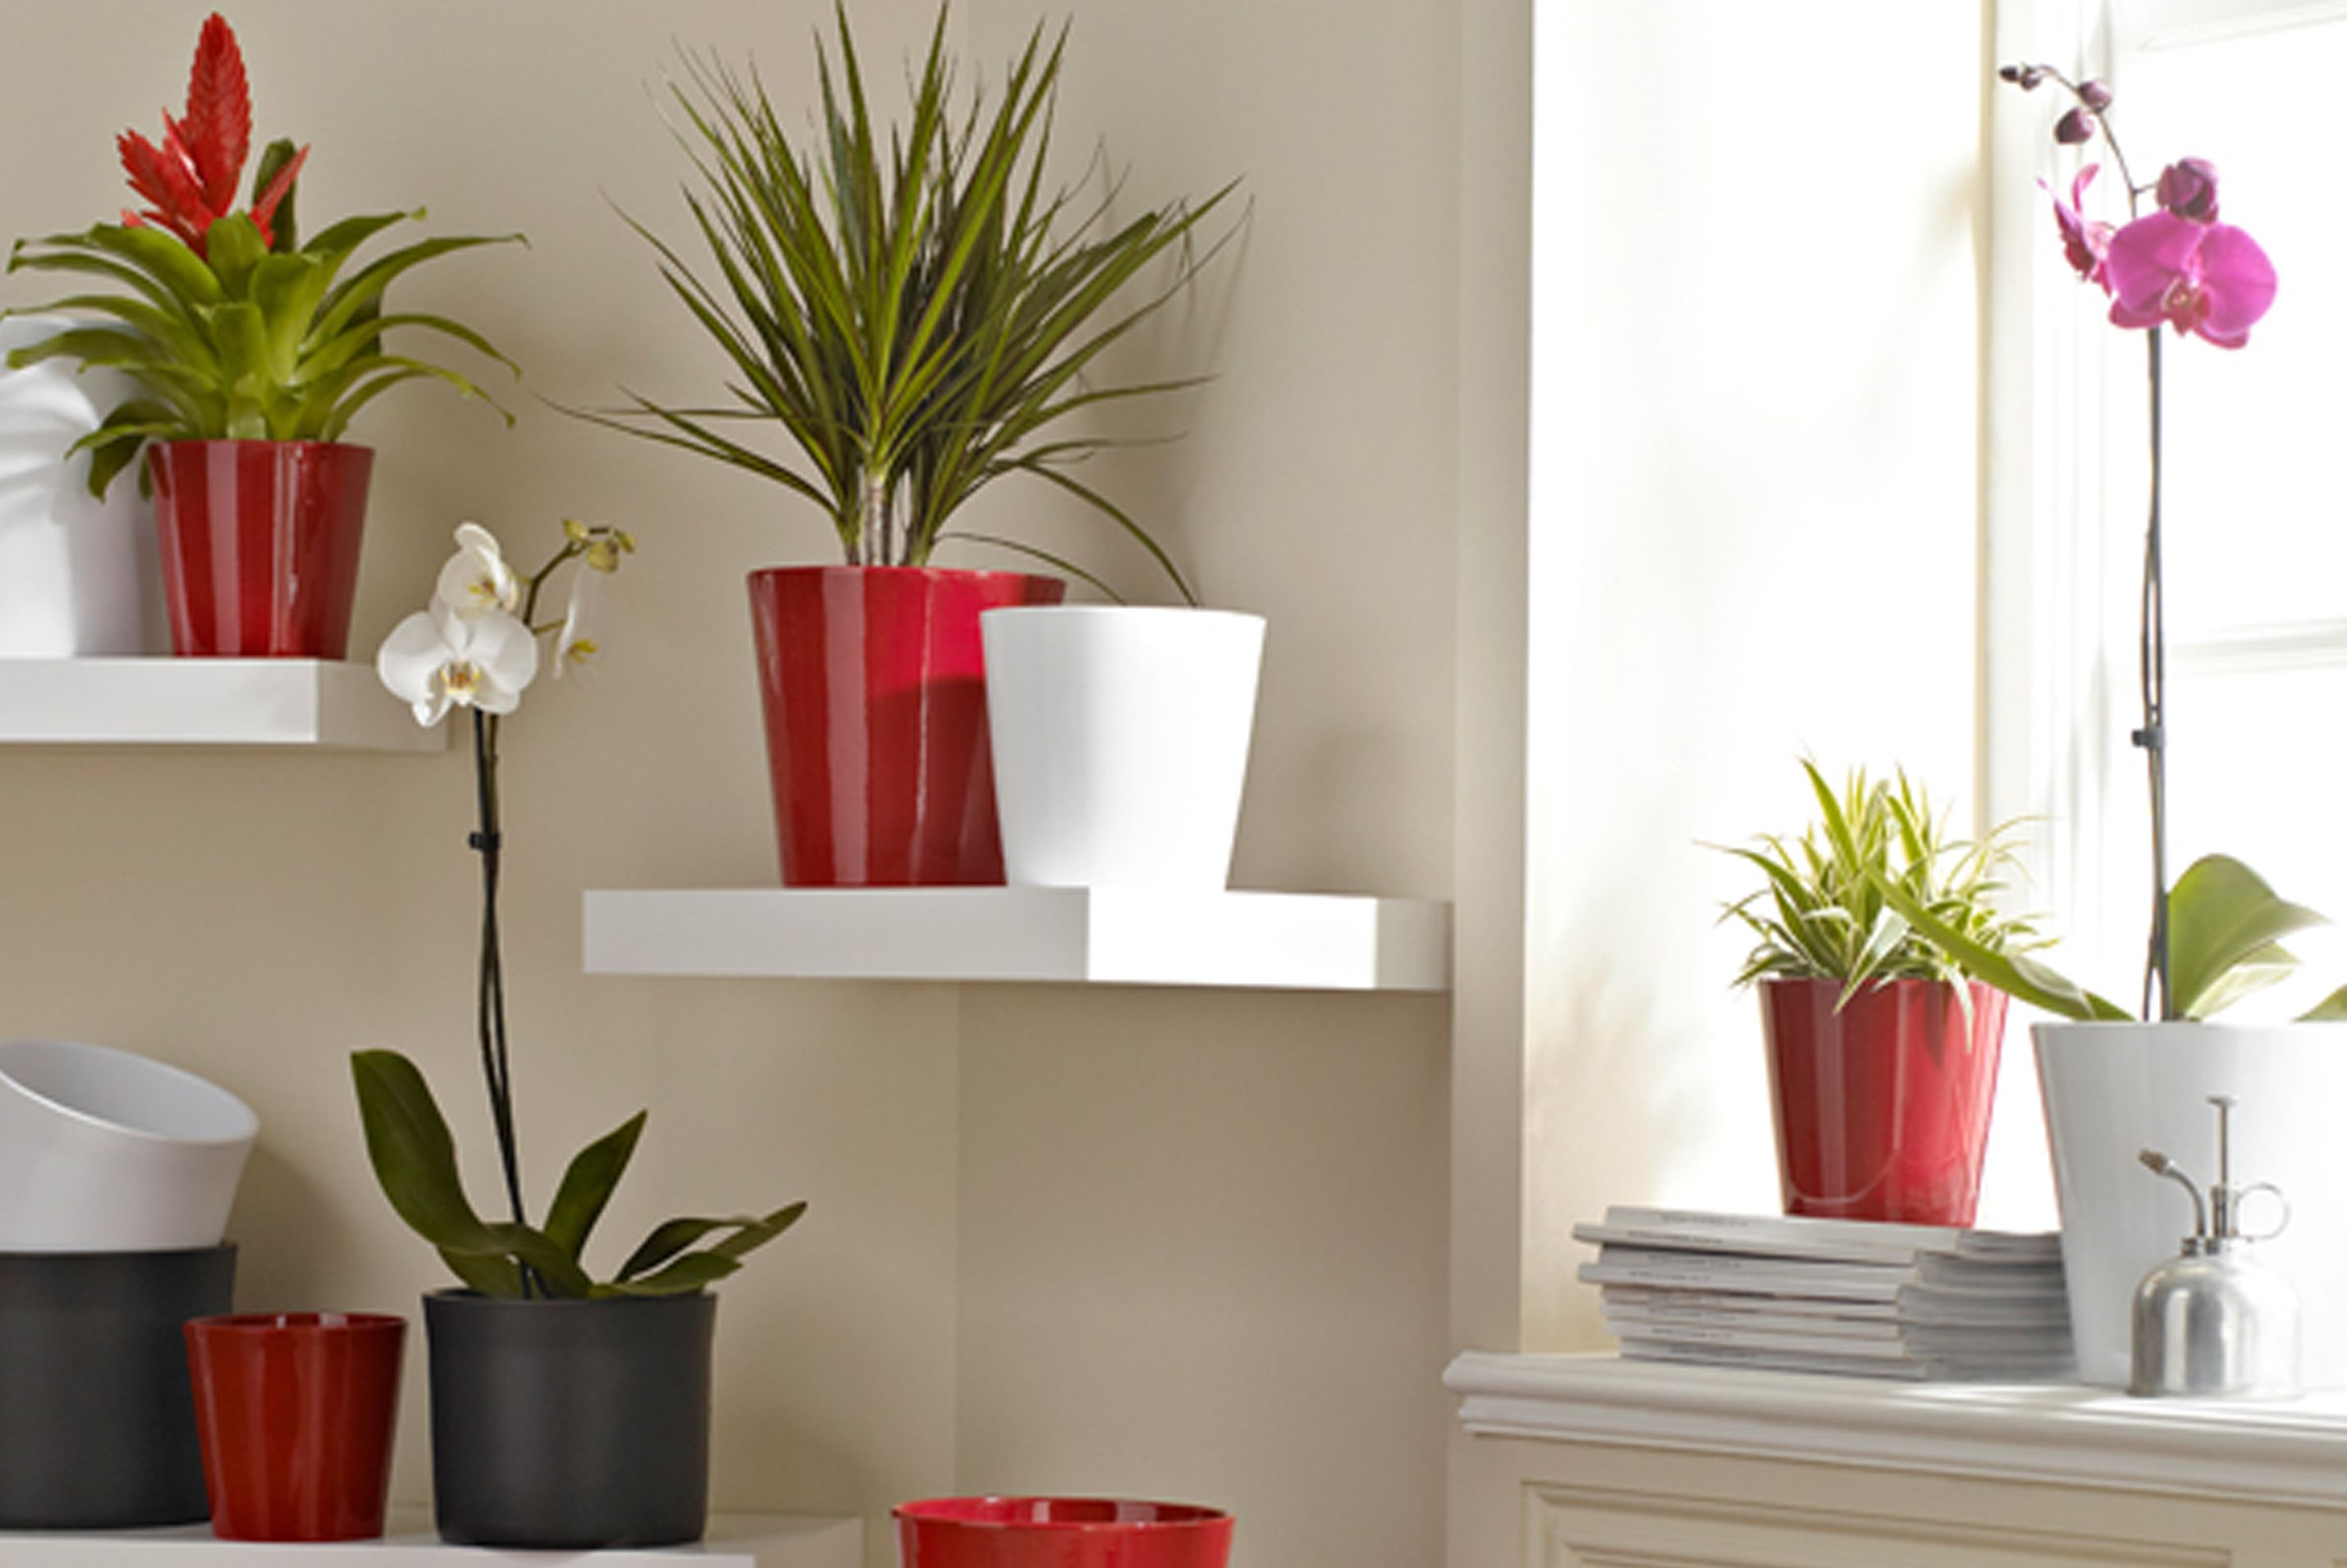 House plant buying guide ideas advice diy at b q for Ideas para decorar la sala dela casa